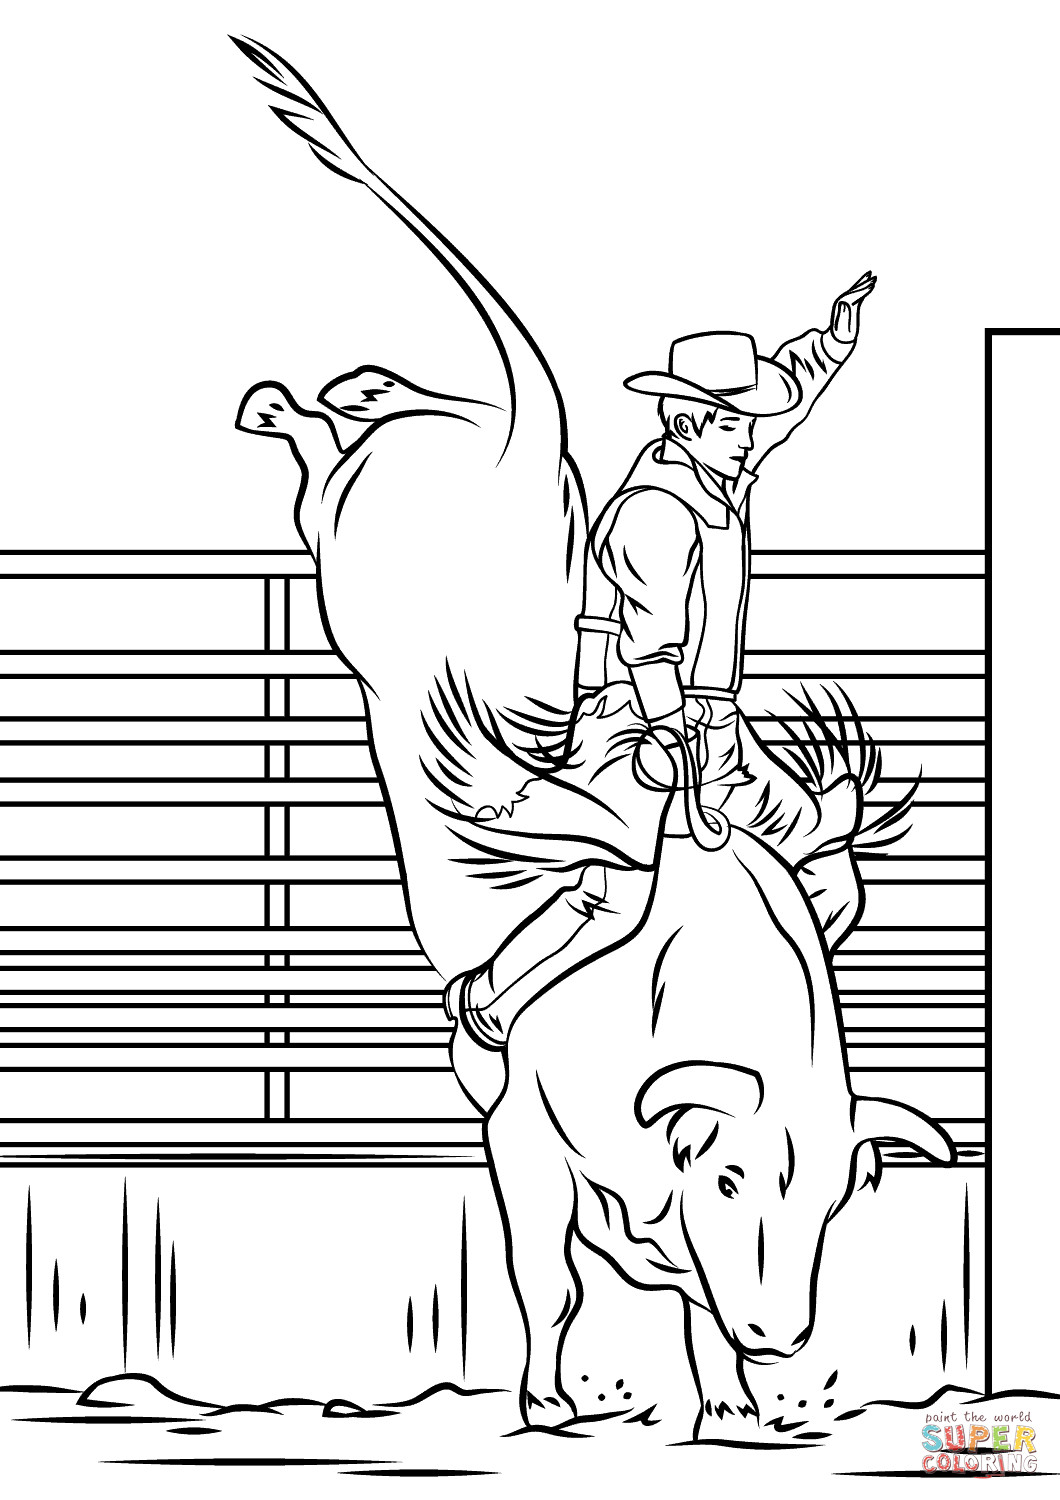 Bull Riding Coloring Pages  Bull Riding Rodeo coloring page